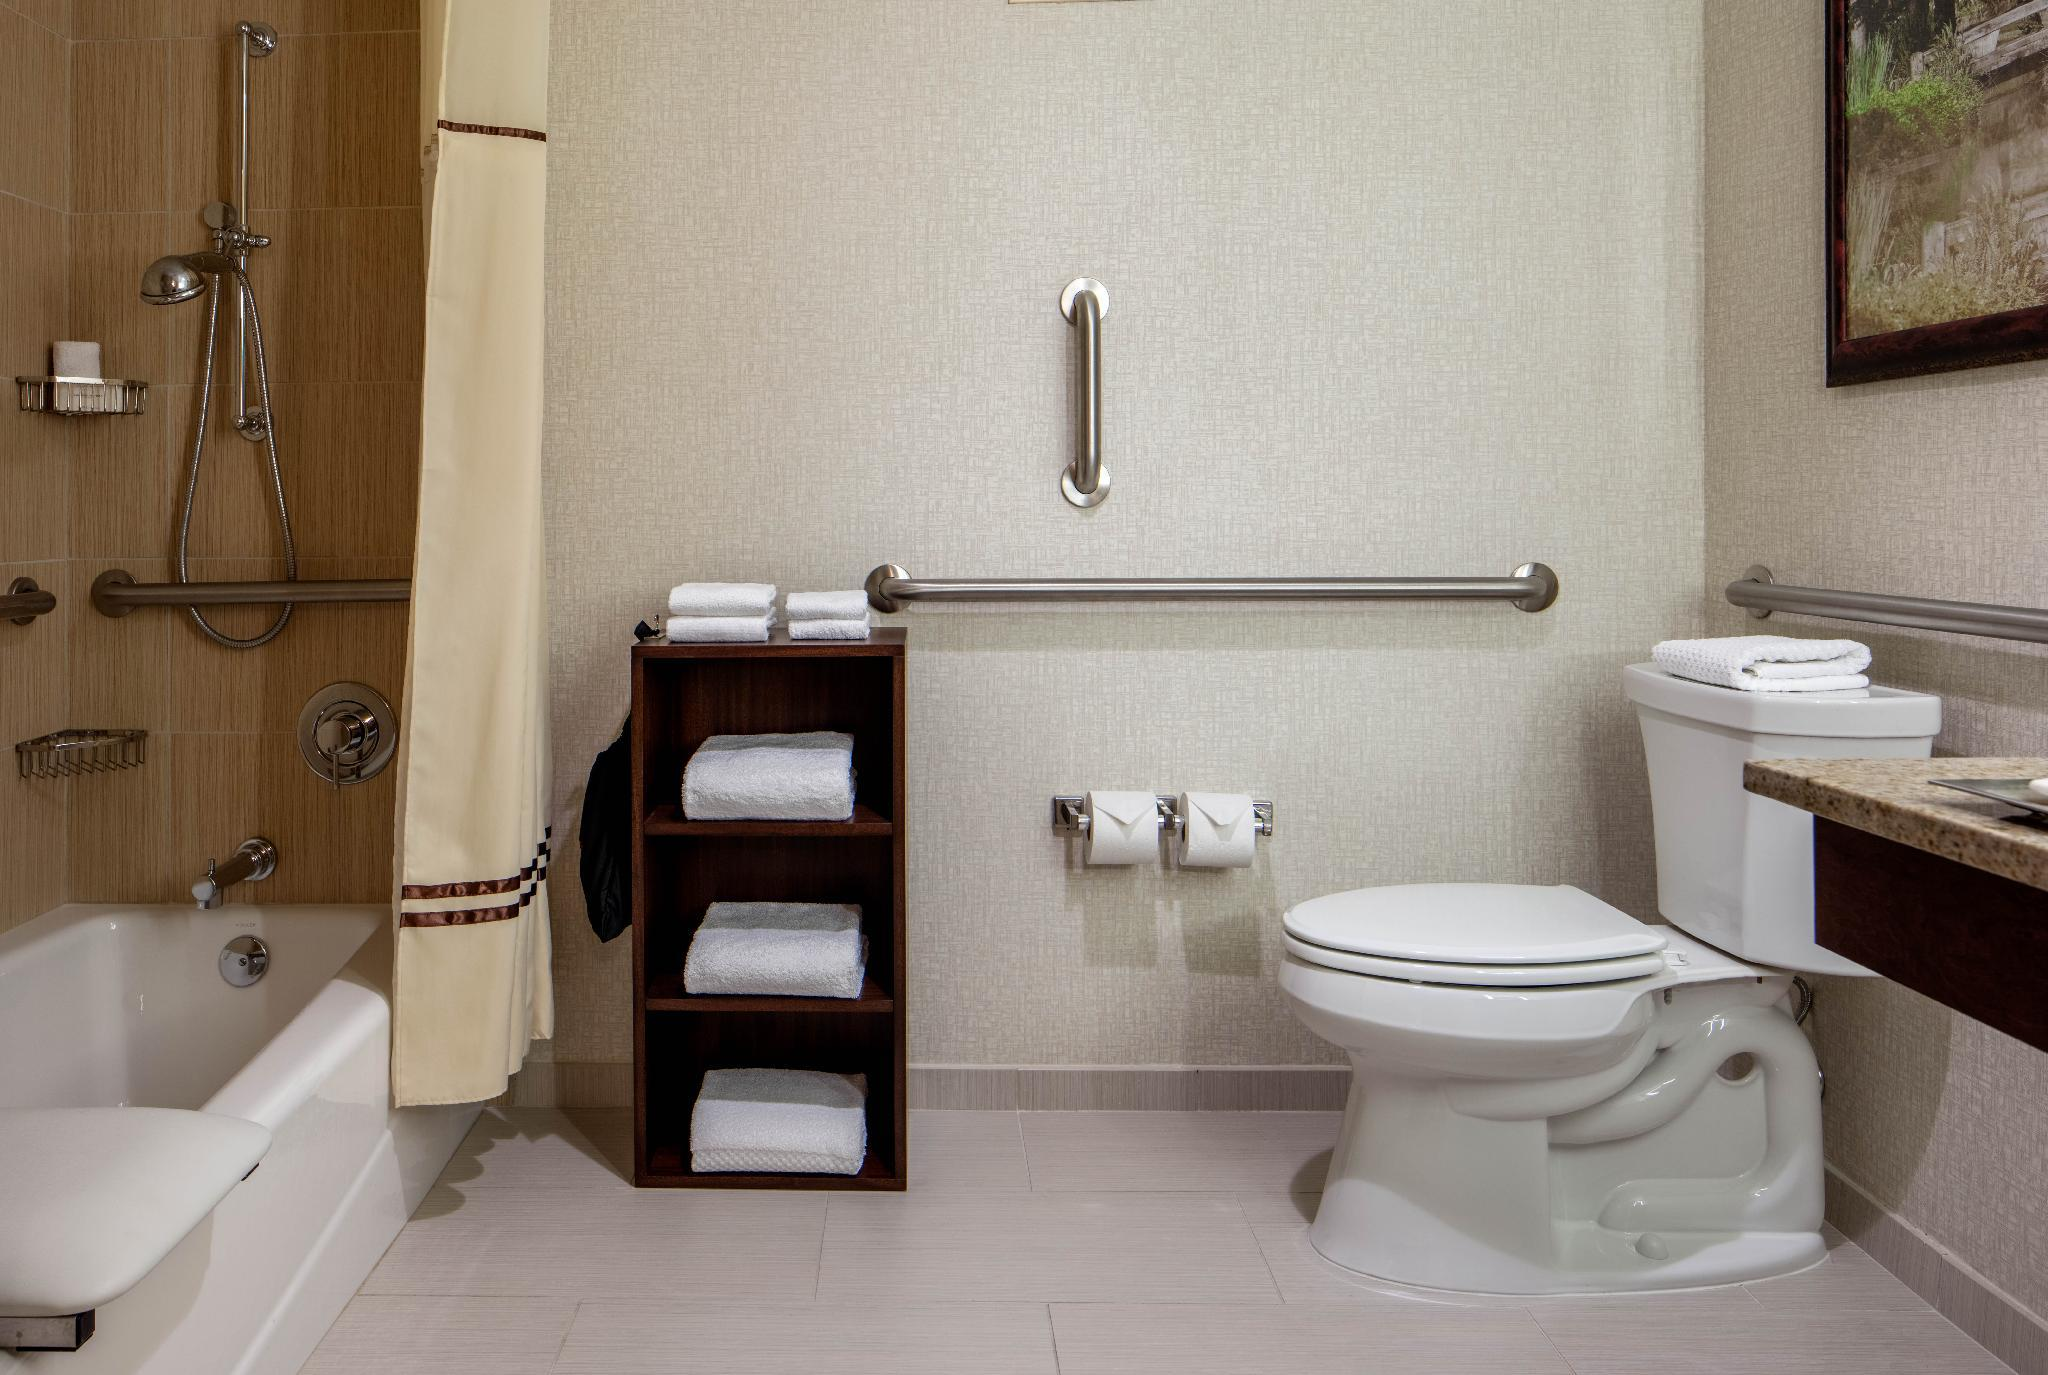 2 Double City View Mobility Hearing Accessible Tub